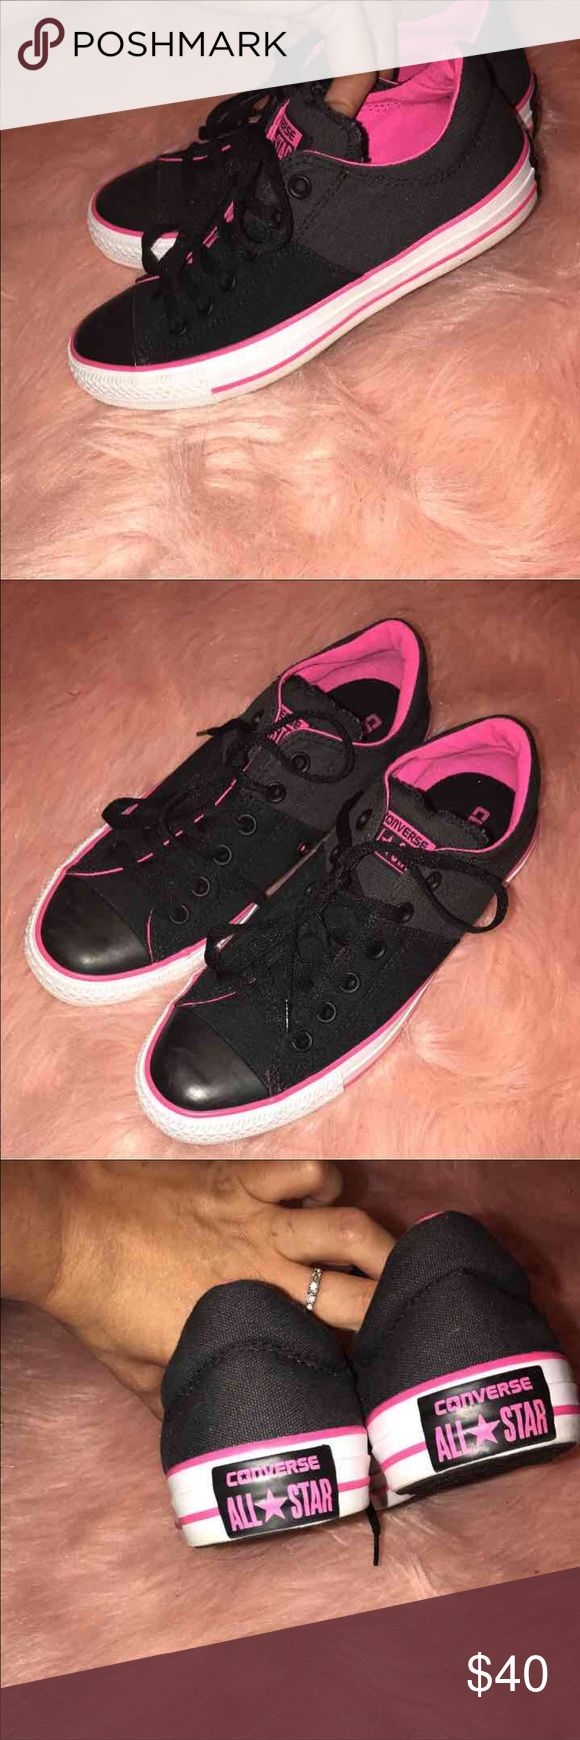 Women's Converse size 8 These are basically new! No scuffs or marks or anything! Super cute! Converse Shoes Sneakers